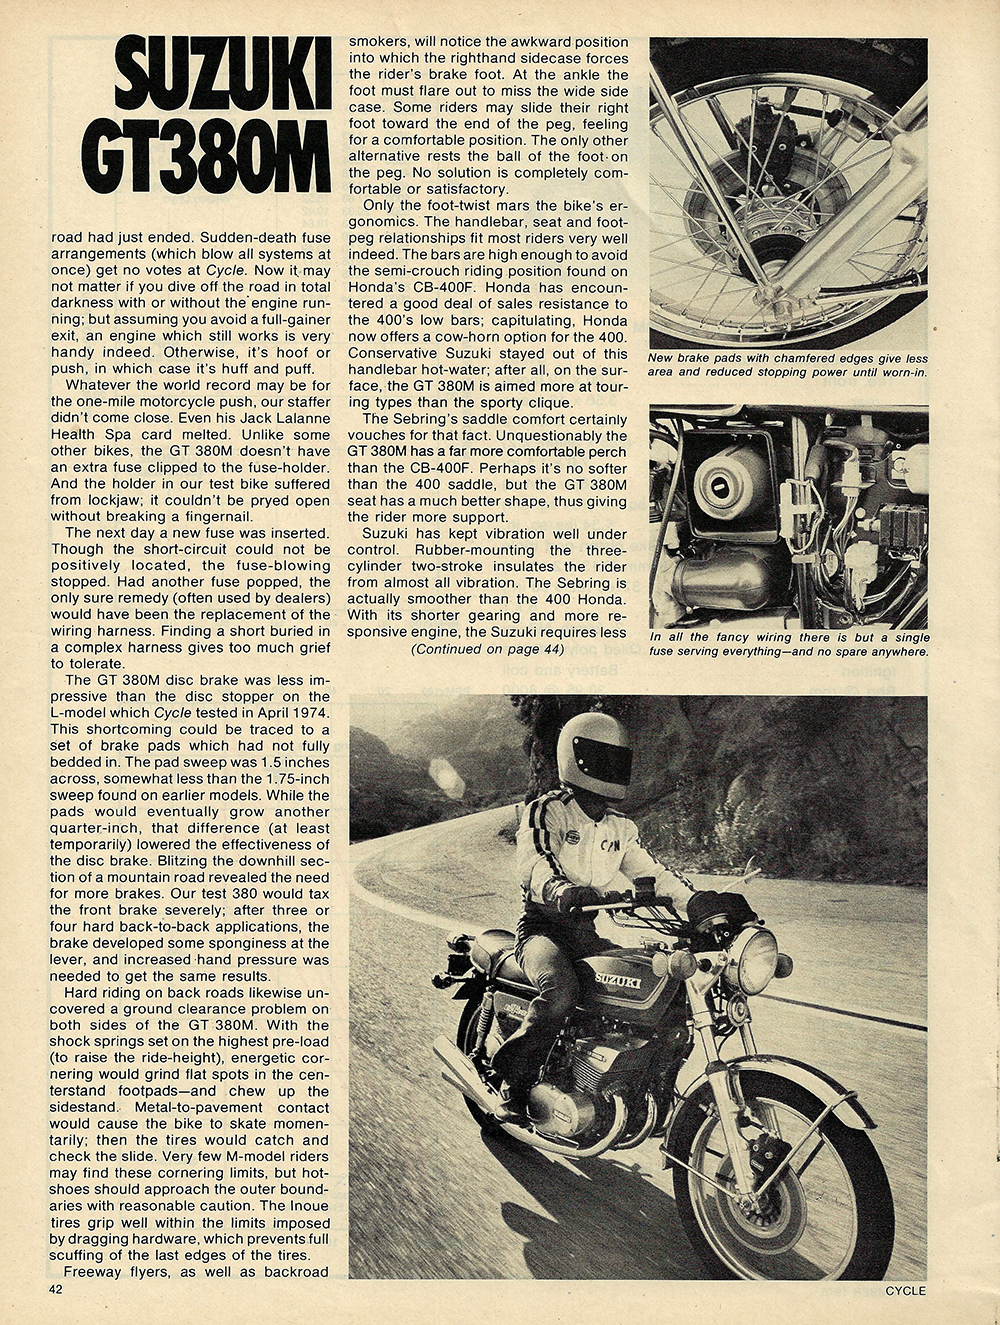 1975 Suzuki GT380M road test 5.JPG